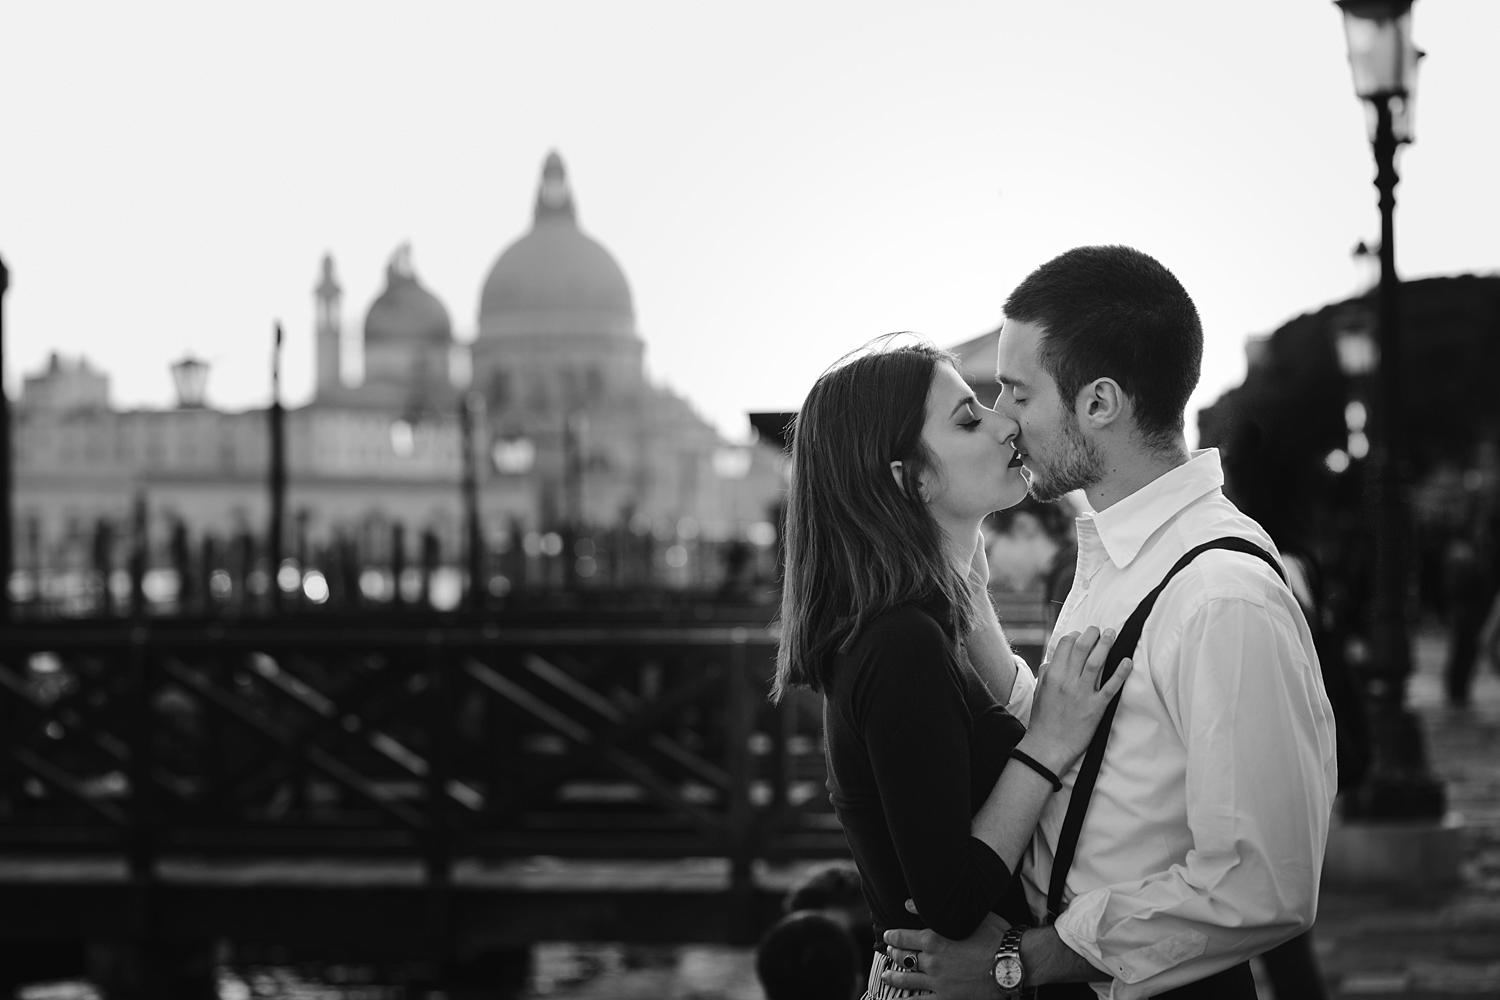 GL 92 - Giulia & Leonardo - An Intimate Shooting in Venice